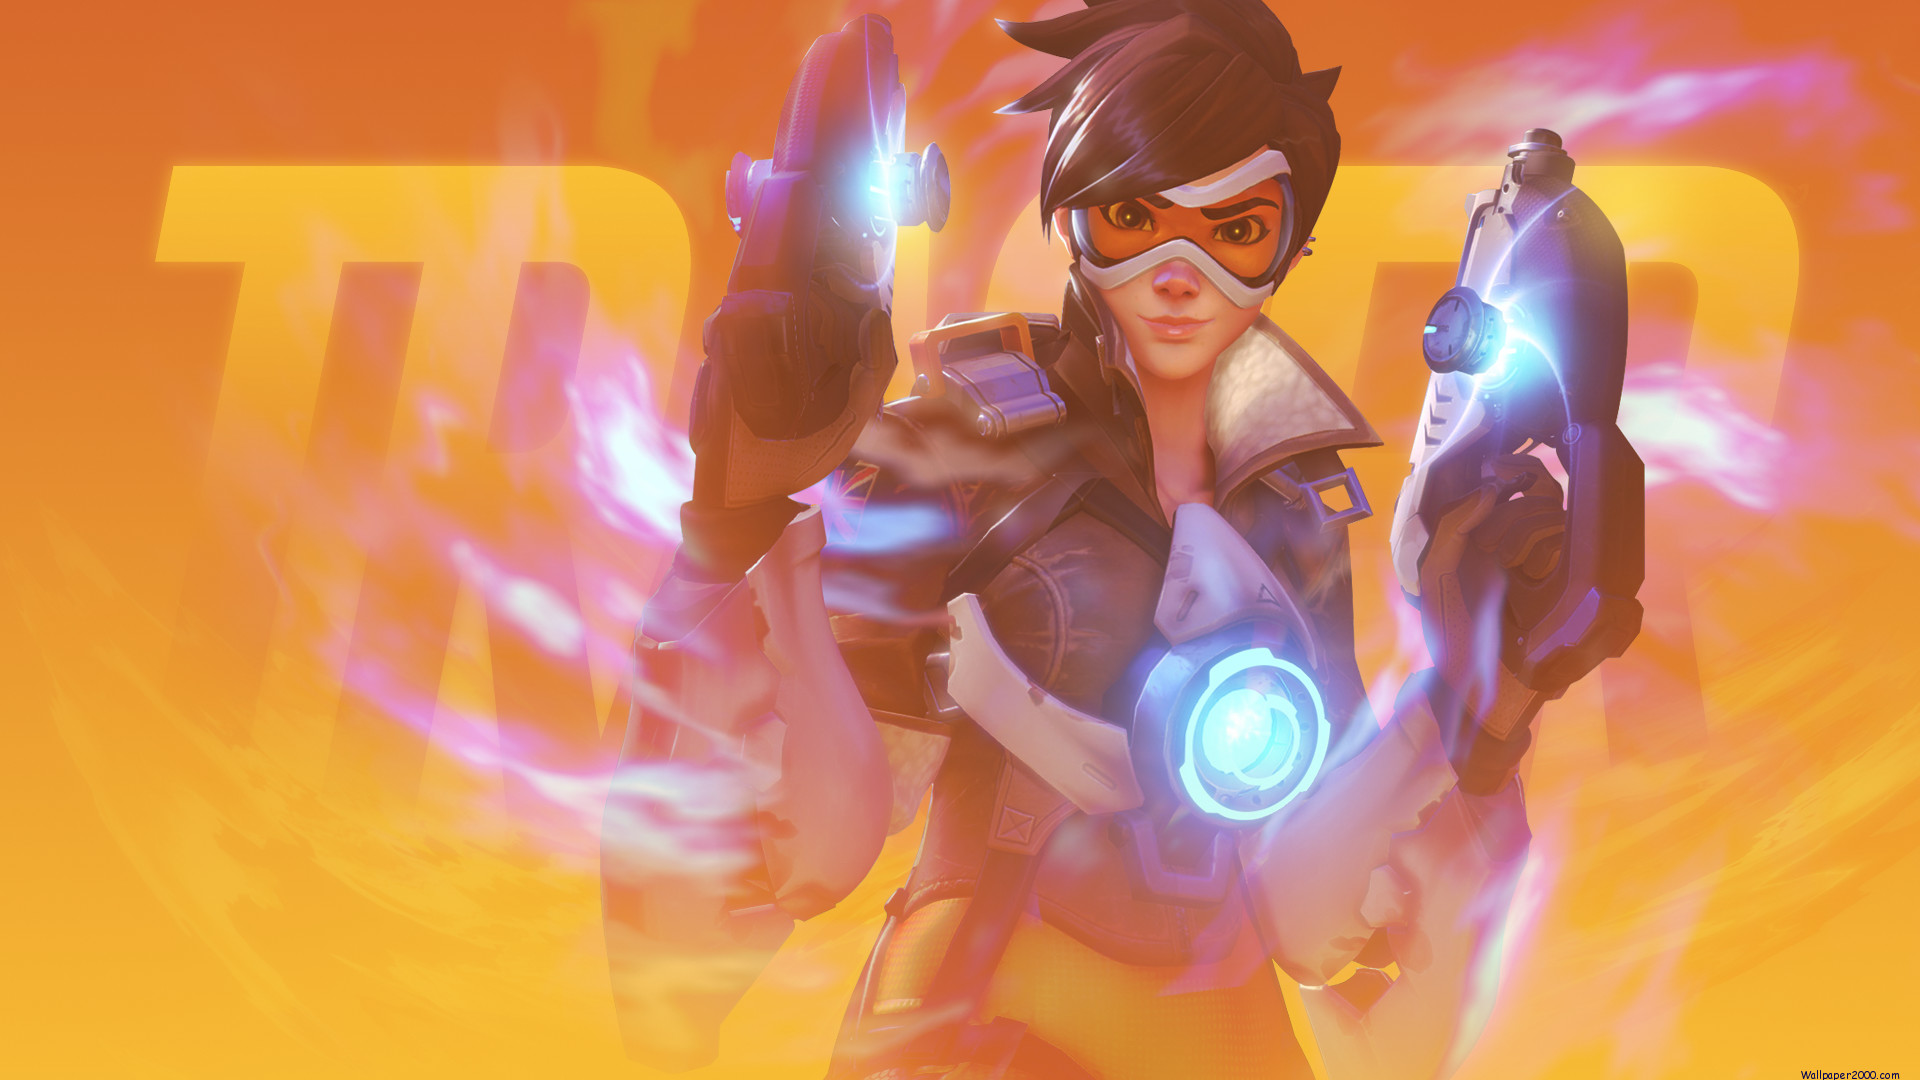 1920x1080 Overwatch Tracer Wallpaper